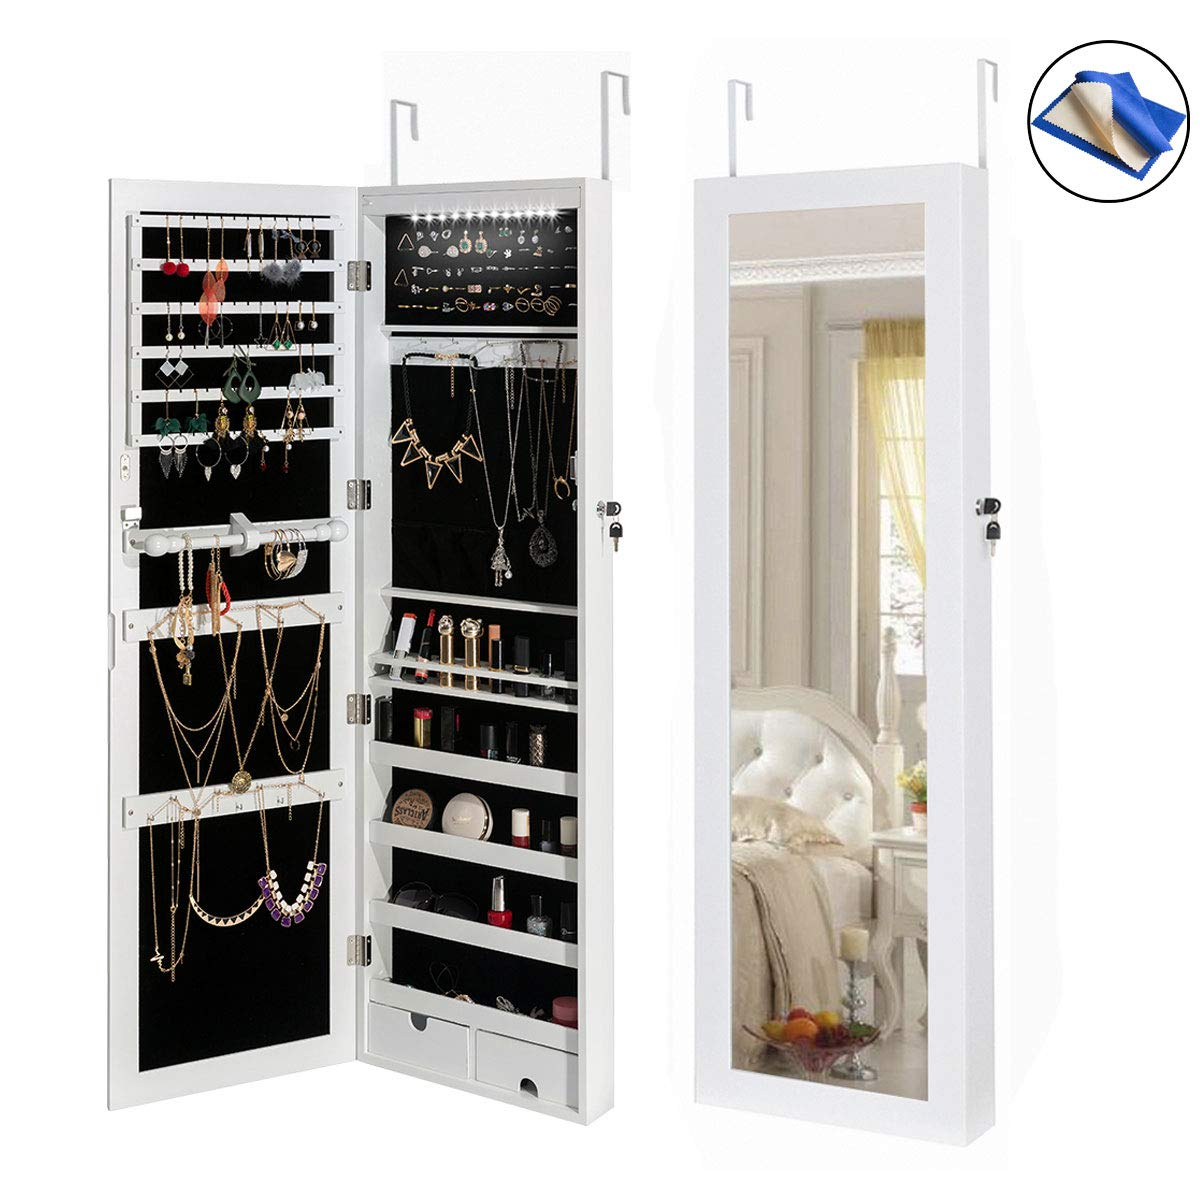 HollyHOME Jewelry Armoires LEDs Jewelry Cabinet Lockable Wall Door Mounted Organizer Storage with Mirror,White